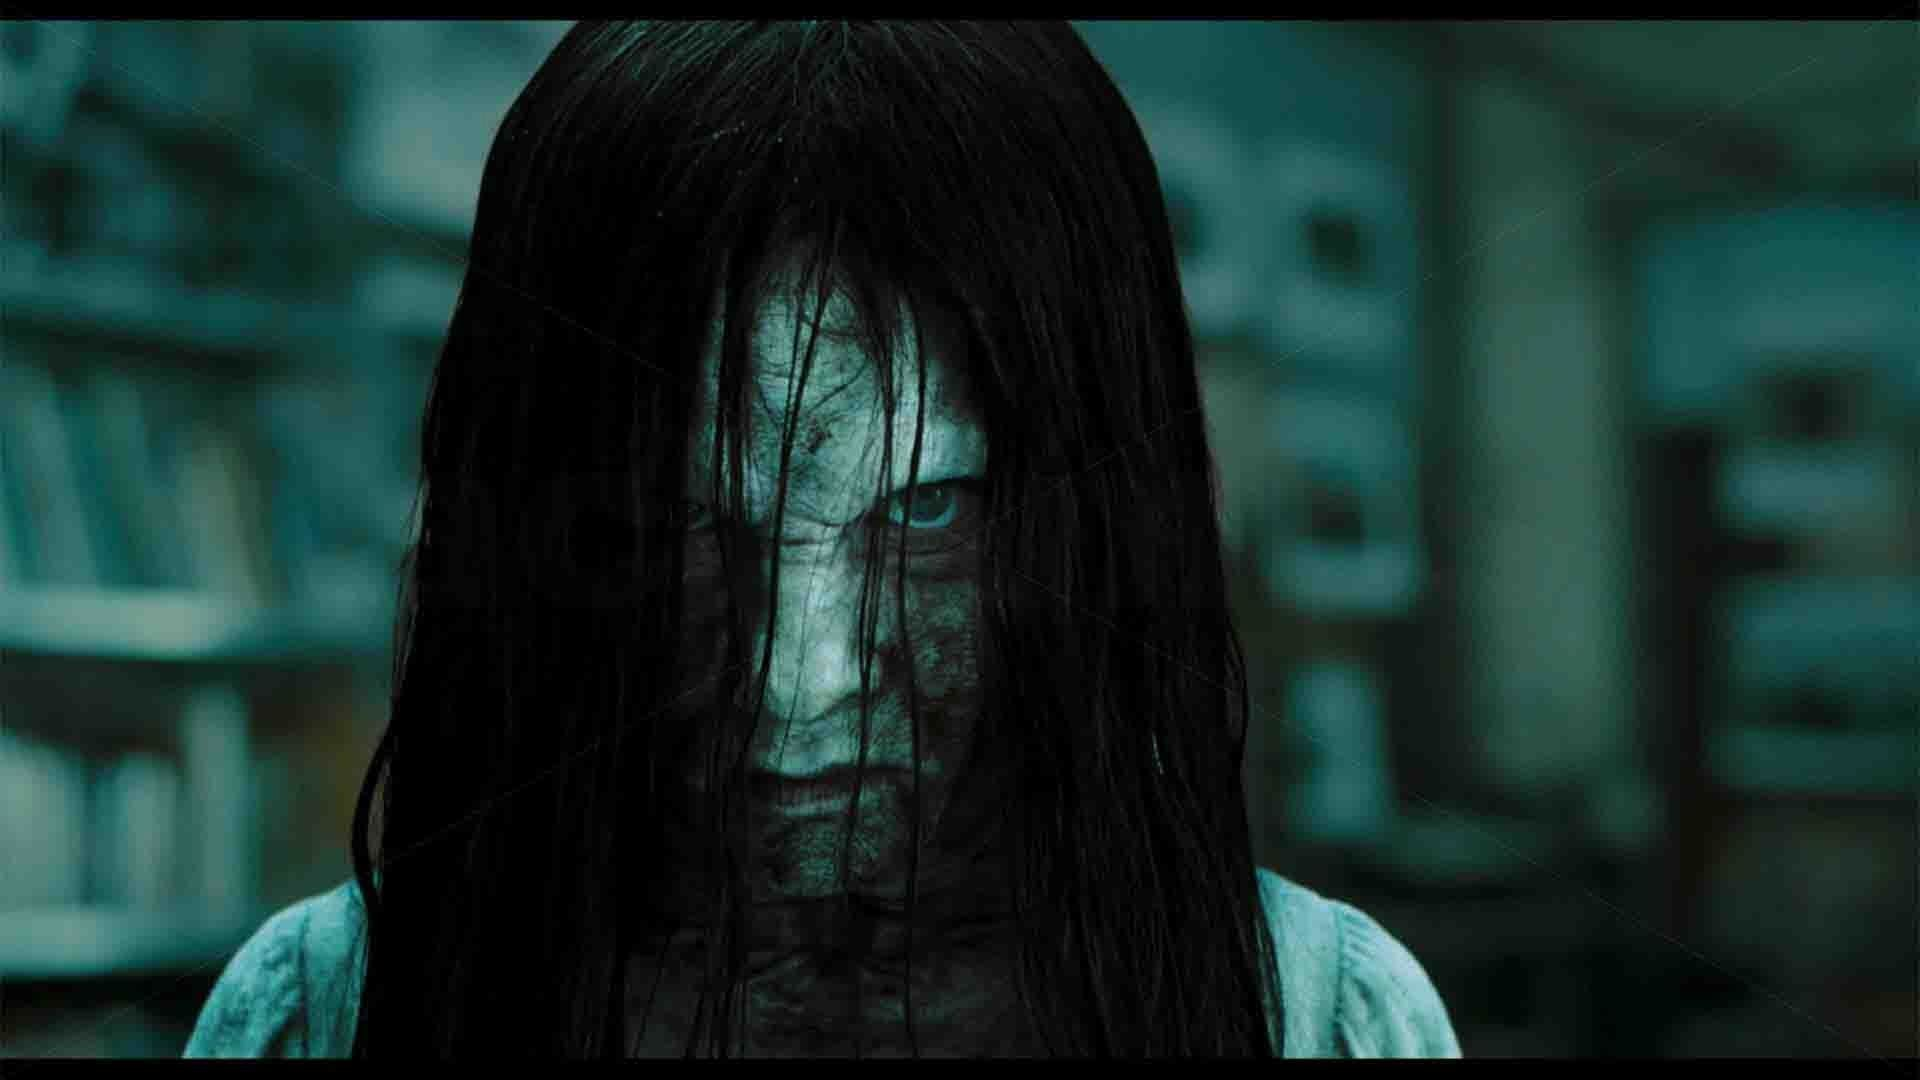 Horror Movie Wallpapers Wallpapertag: Horror Movie Screensavers And Wallpapers (42+ Images